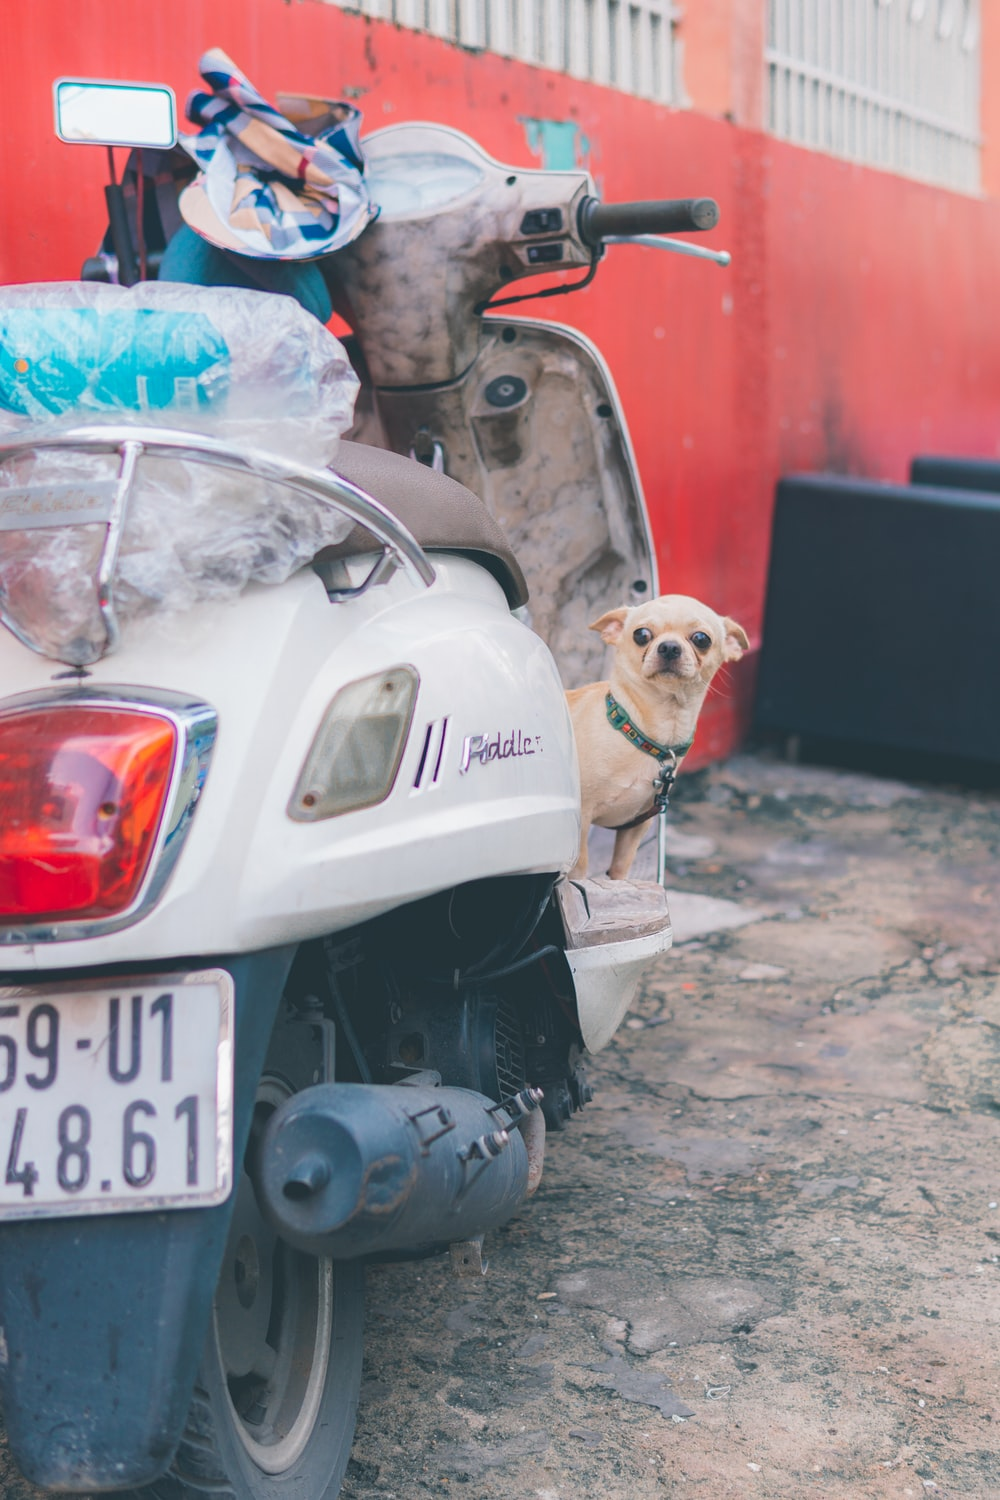 white and brown short coated dog on black motorcycle